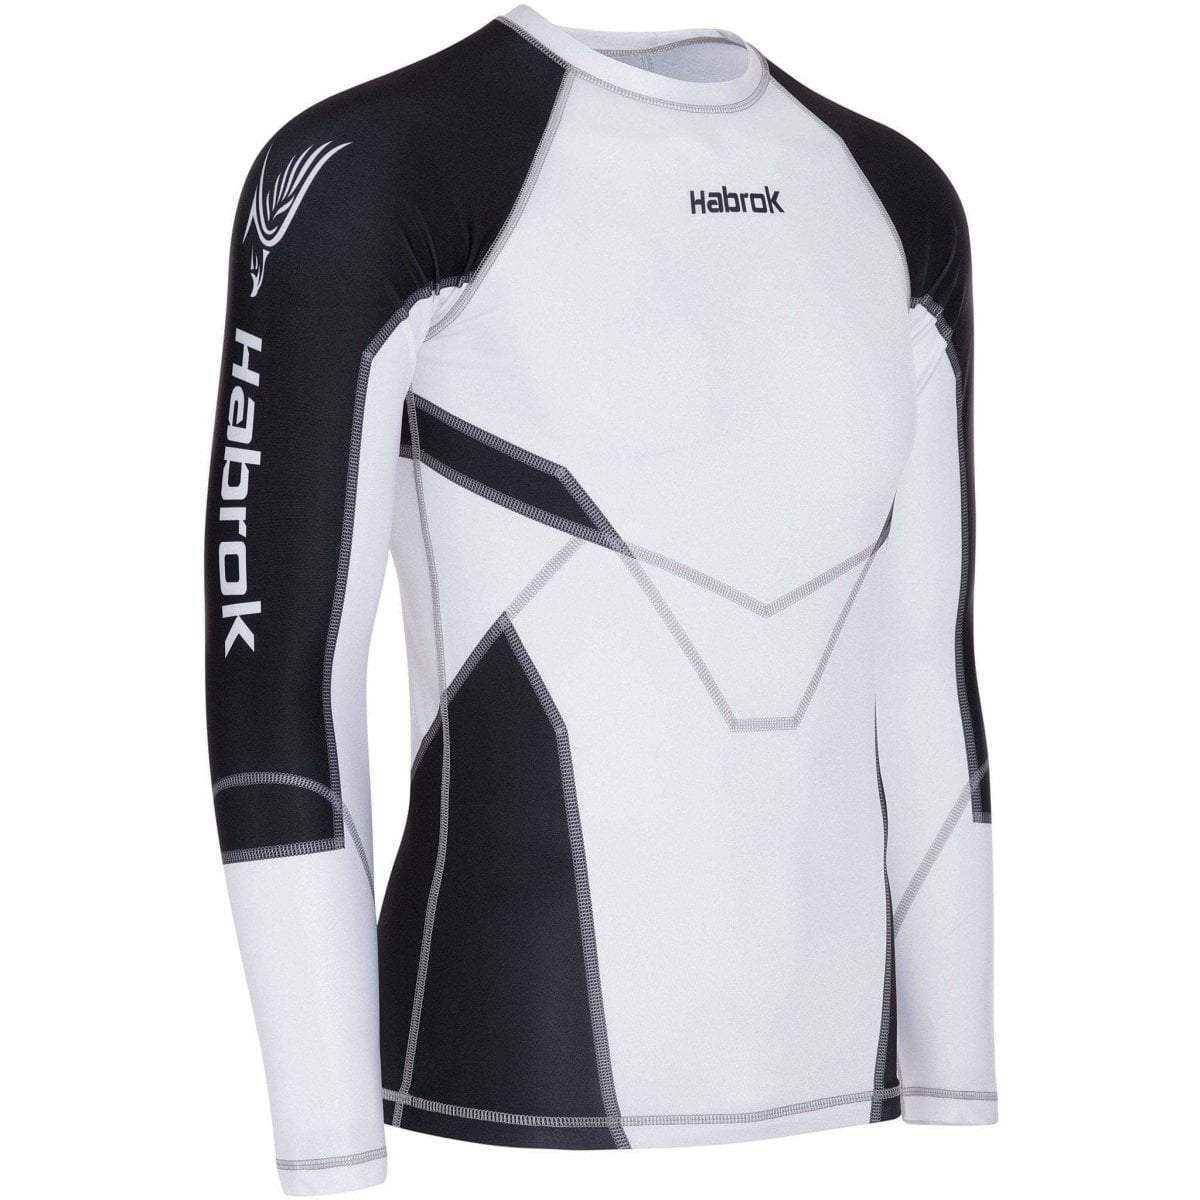 Habrok Rash Guard S / BLACK Transform 2.5 | Rash Guard | Men